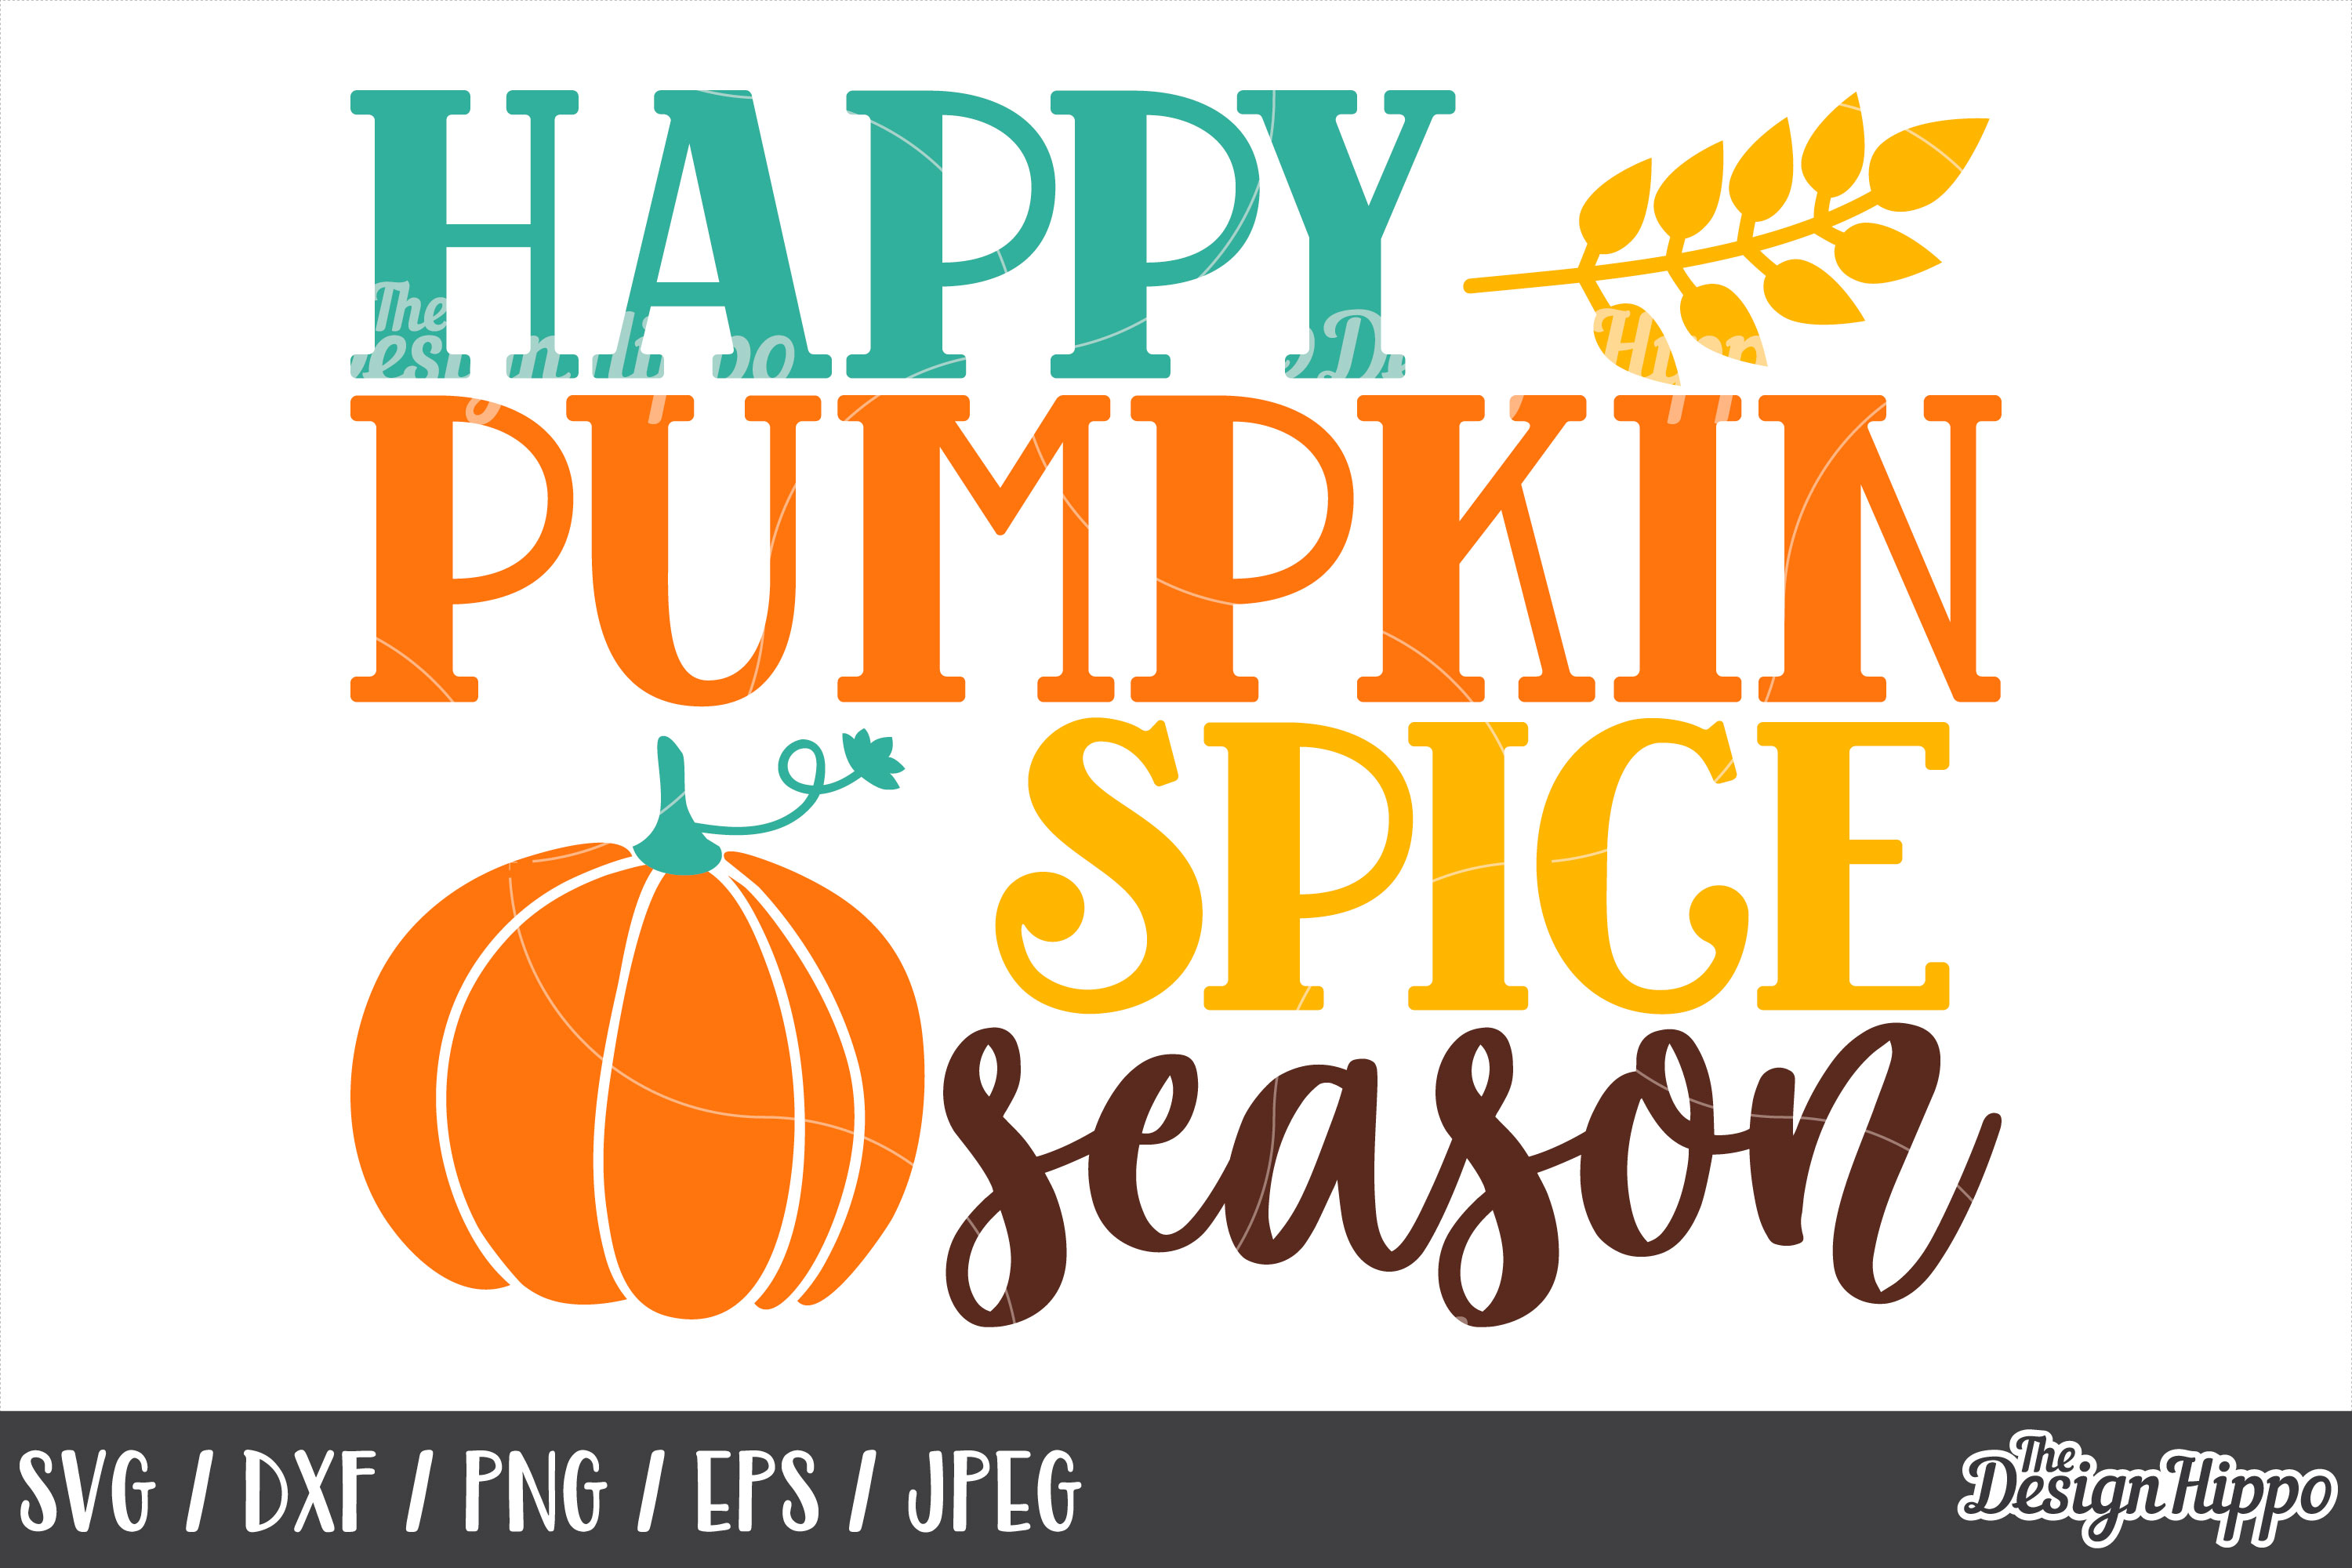 Happy Pumpkin Spice Season SVG, DXF, PNG, JPEG, Cut Files example image 1